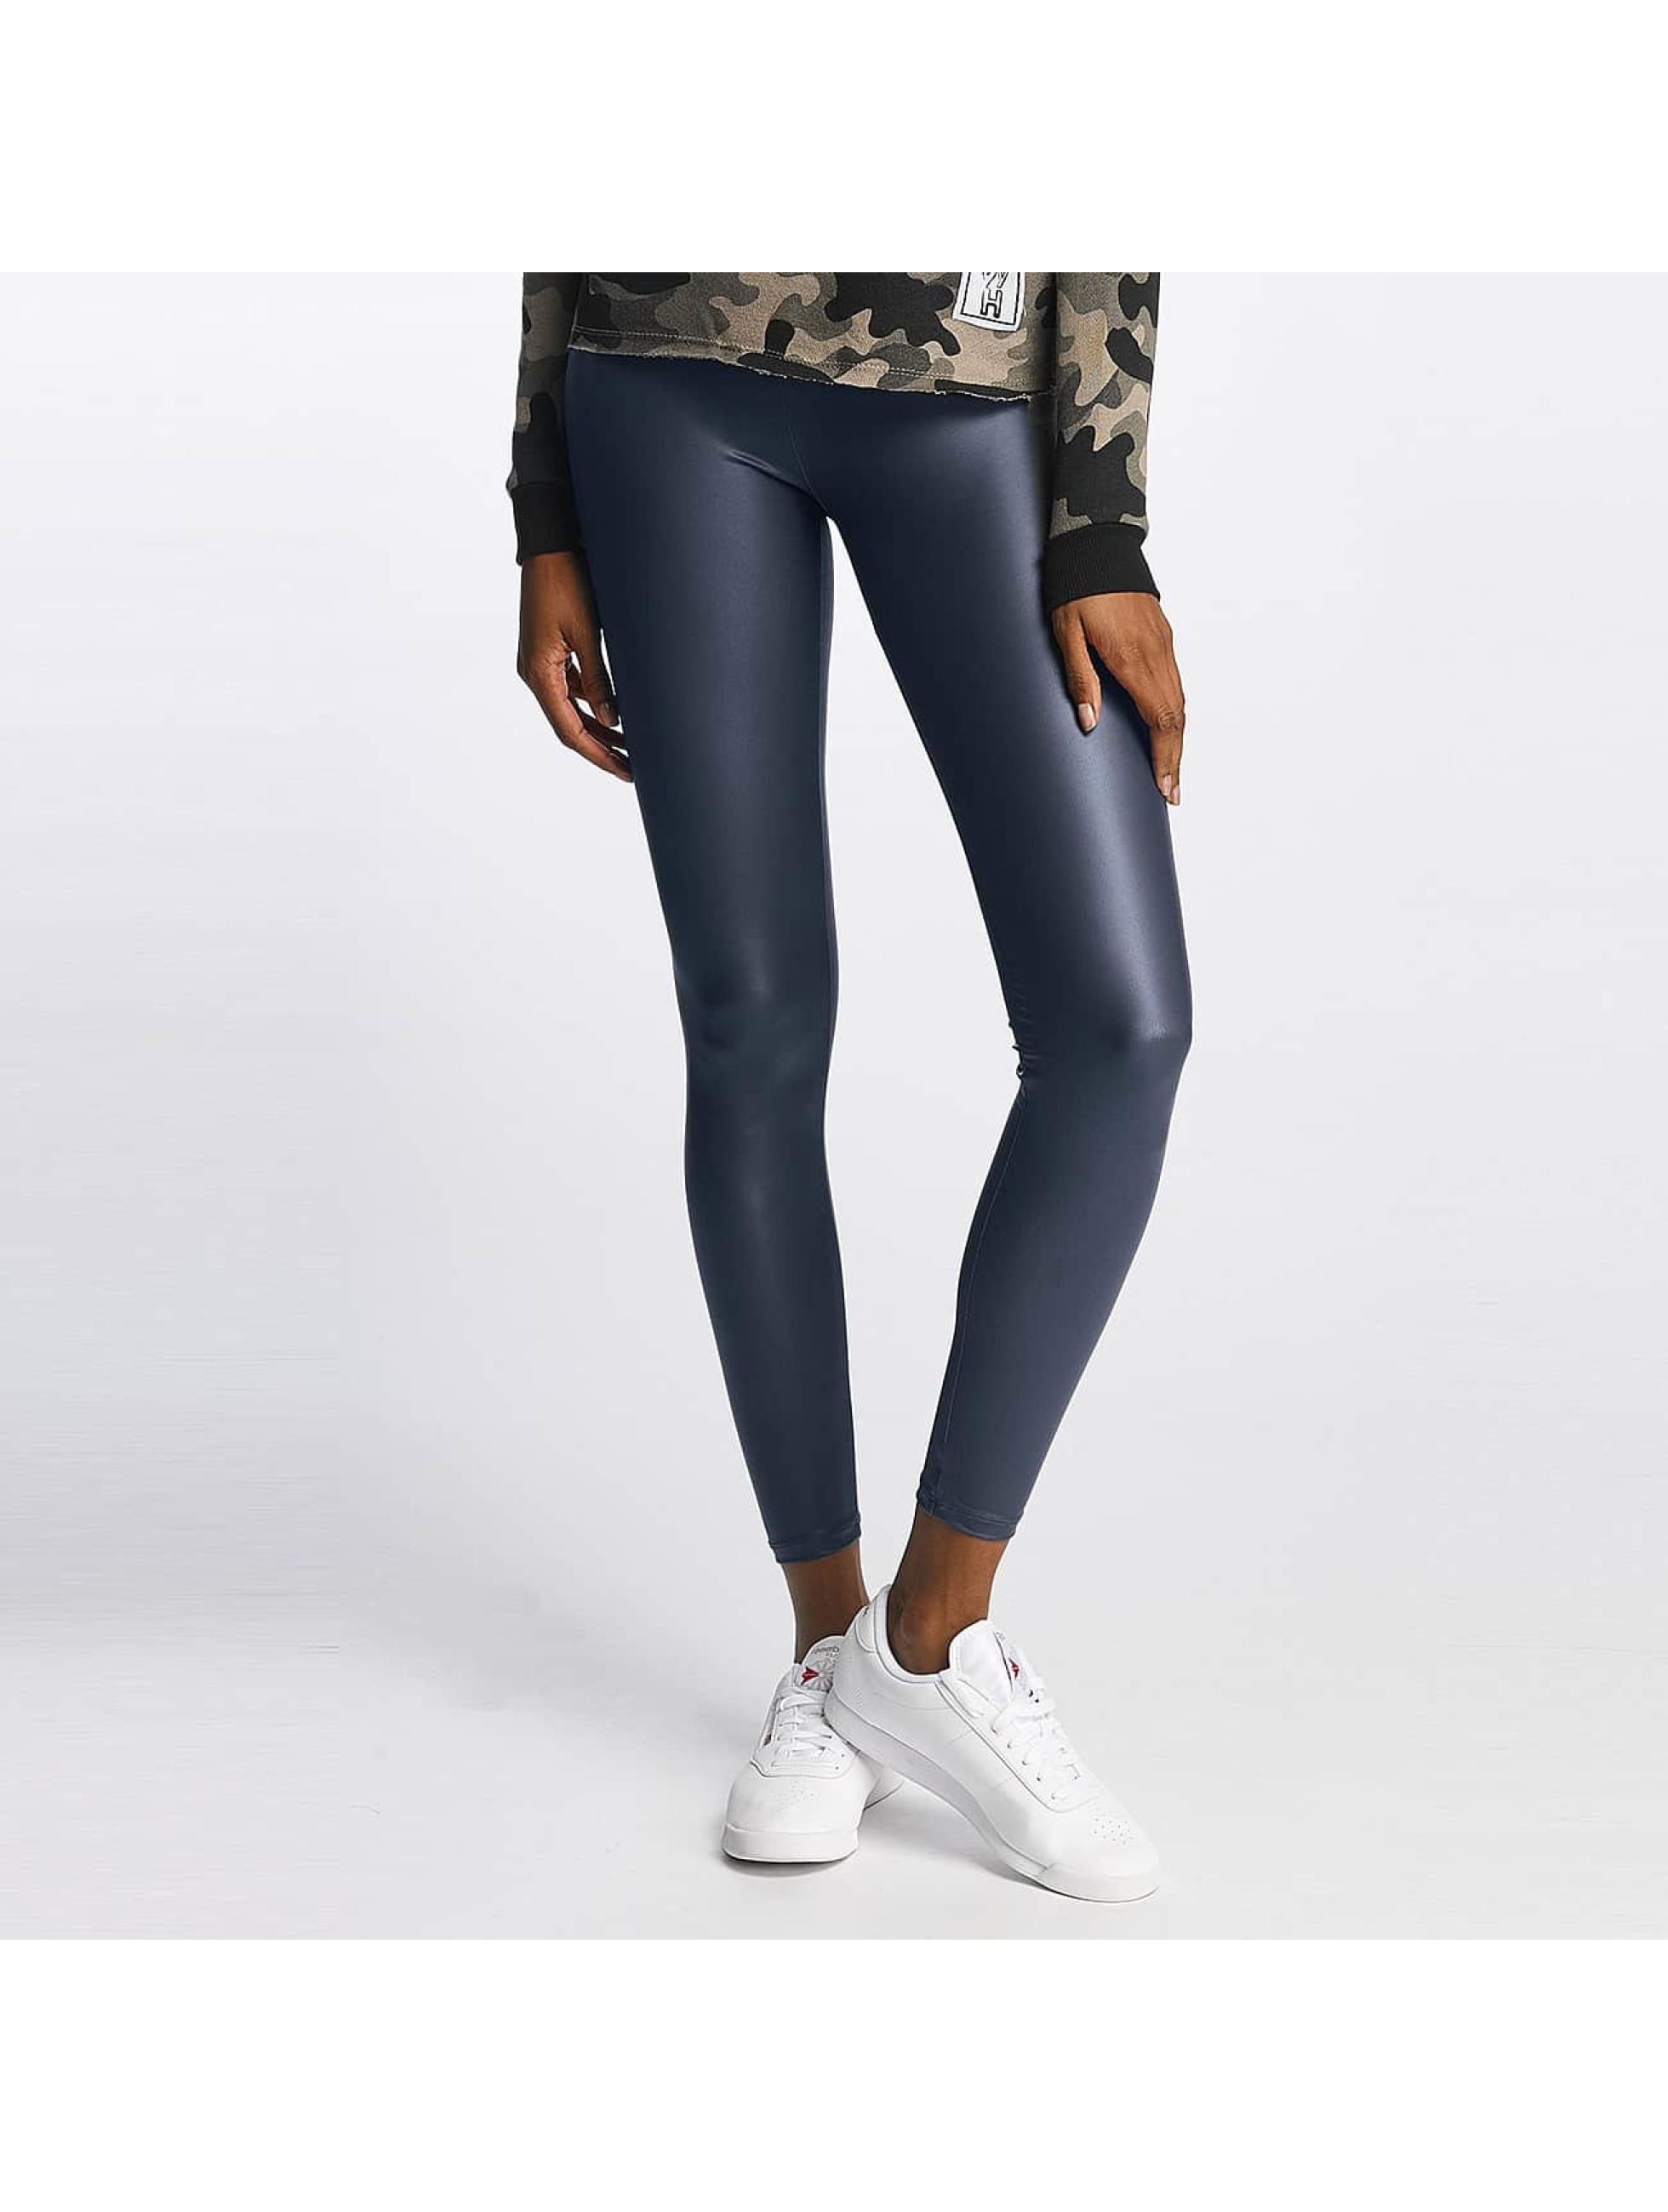 Pieces Frauen Legging pcPetra Shiny in grau